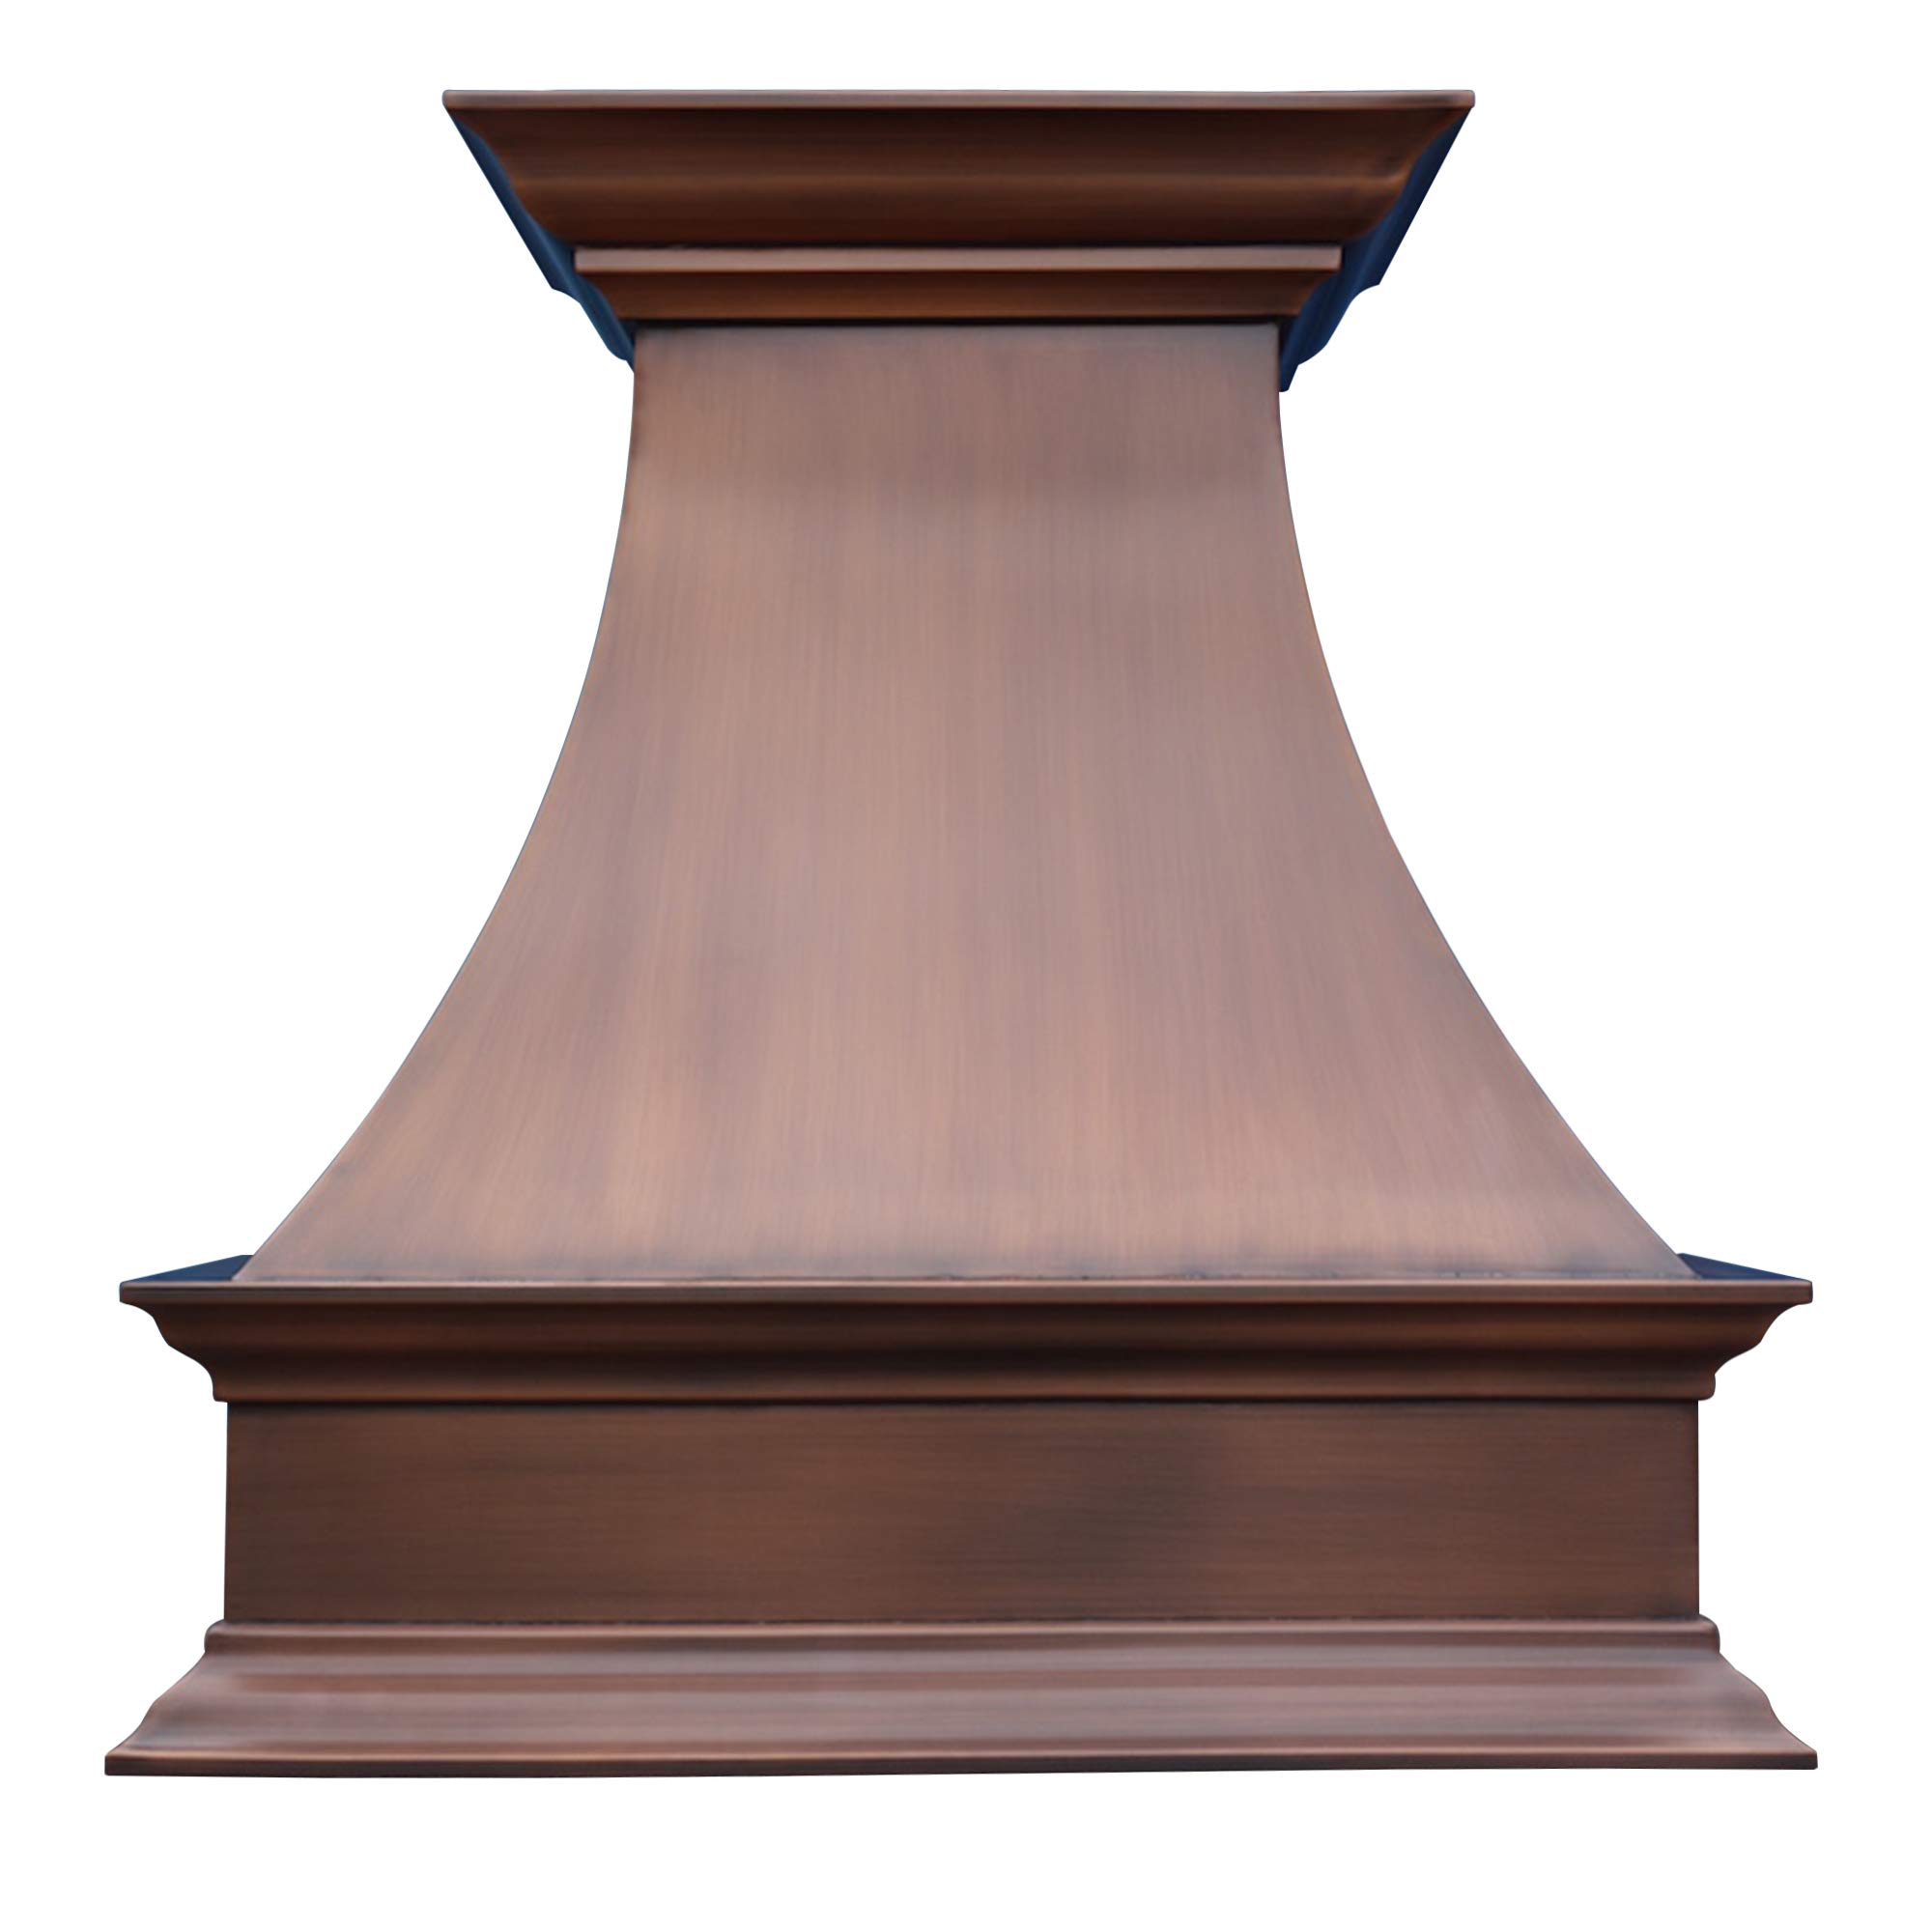 "SINDA Natural Beautiful Copper Kitchen Hood, Handcrafted by Skilled Artisan, Comes with High Air Flow Motor Fan, 48""Wx42""H Island Mount, Smooth-Natural Copper, H17SC-SNI4842"